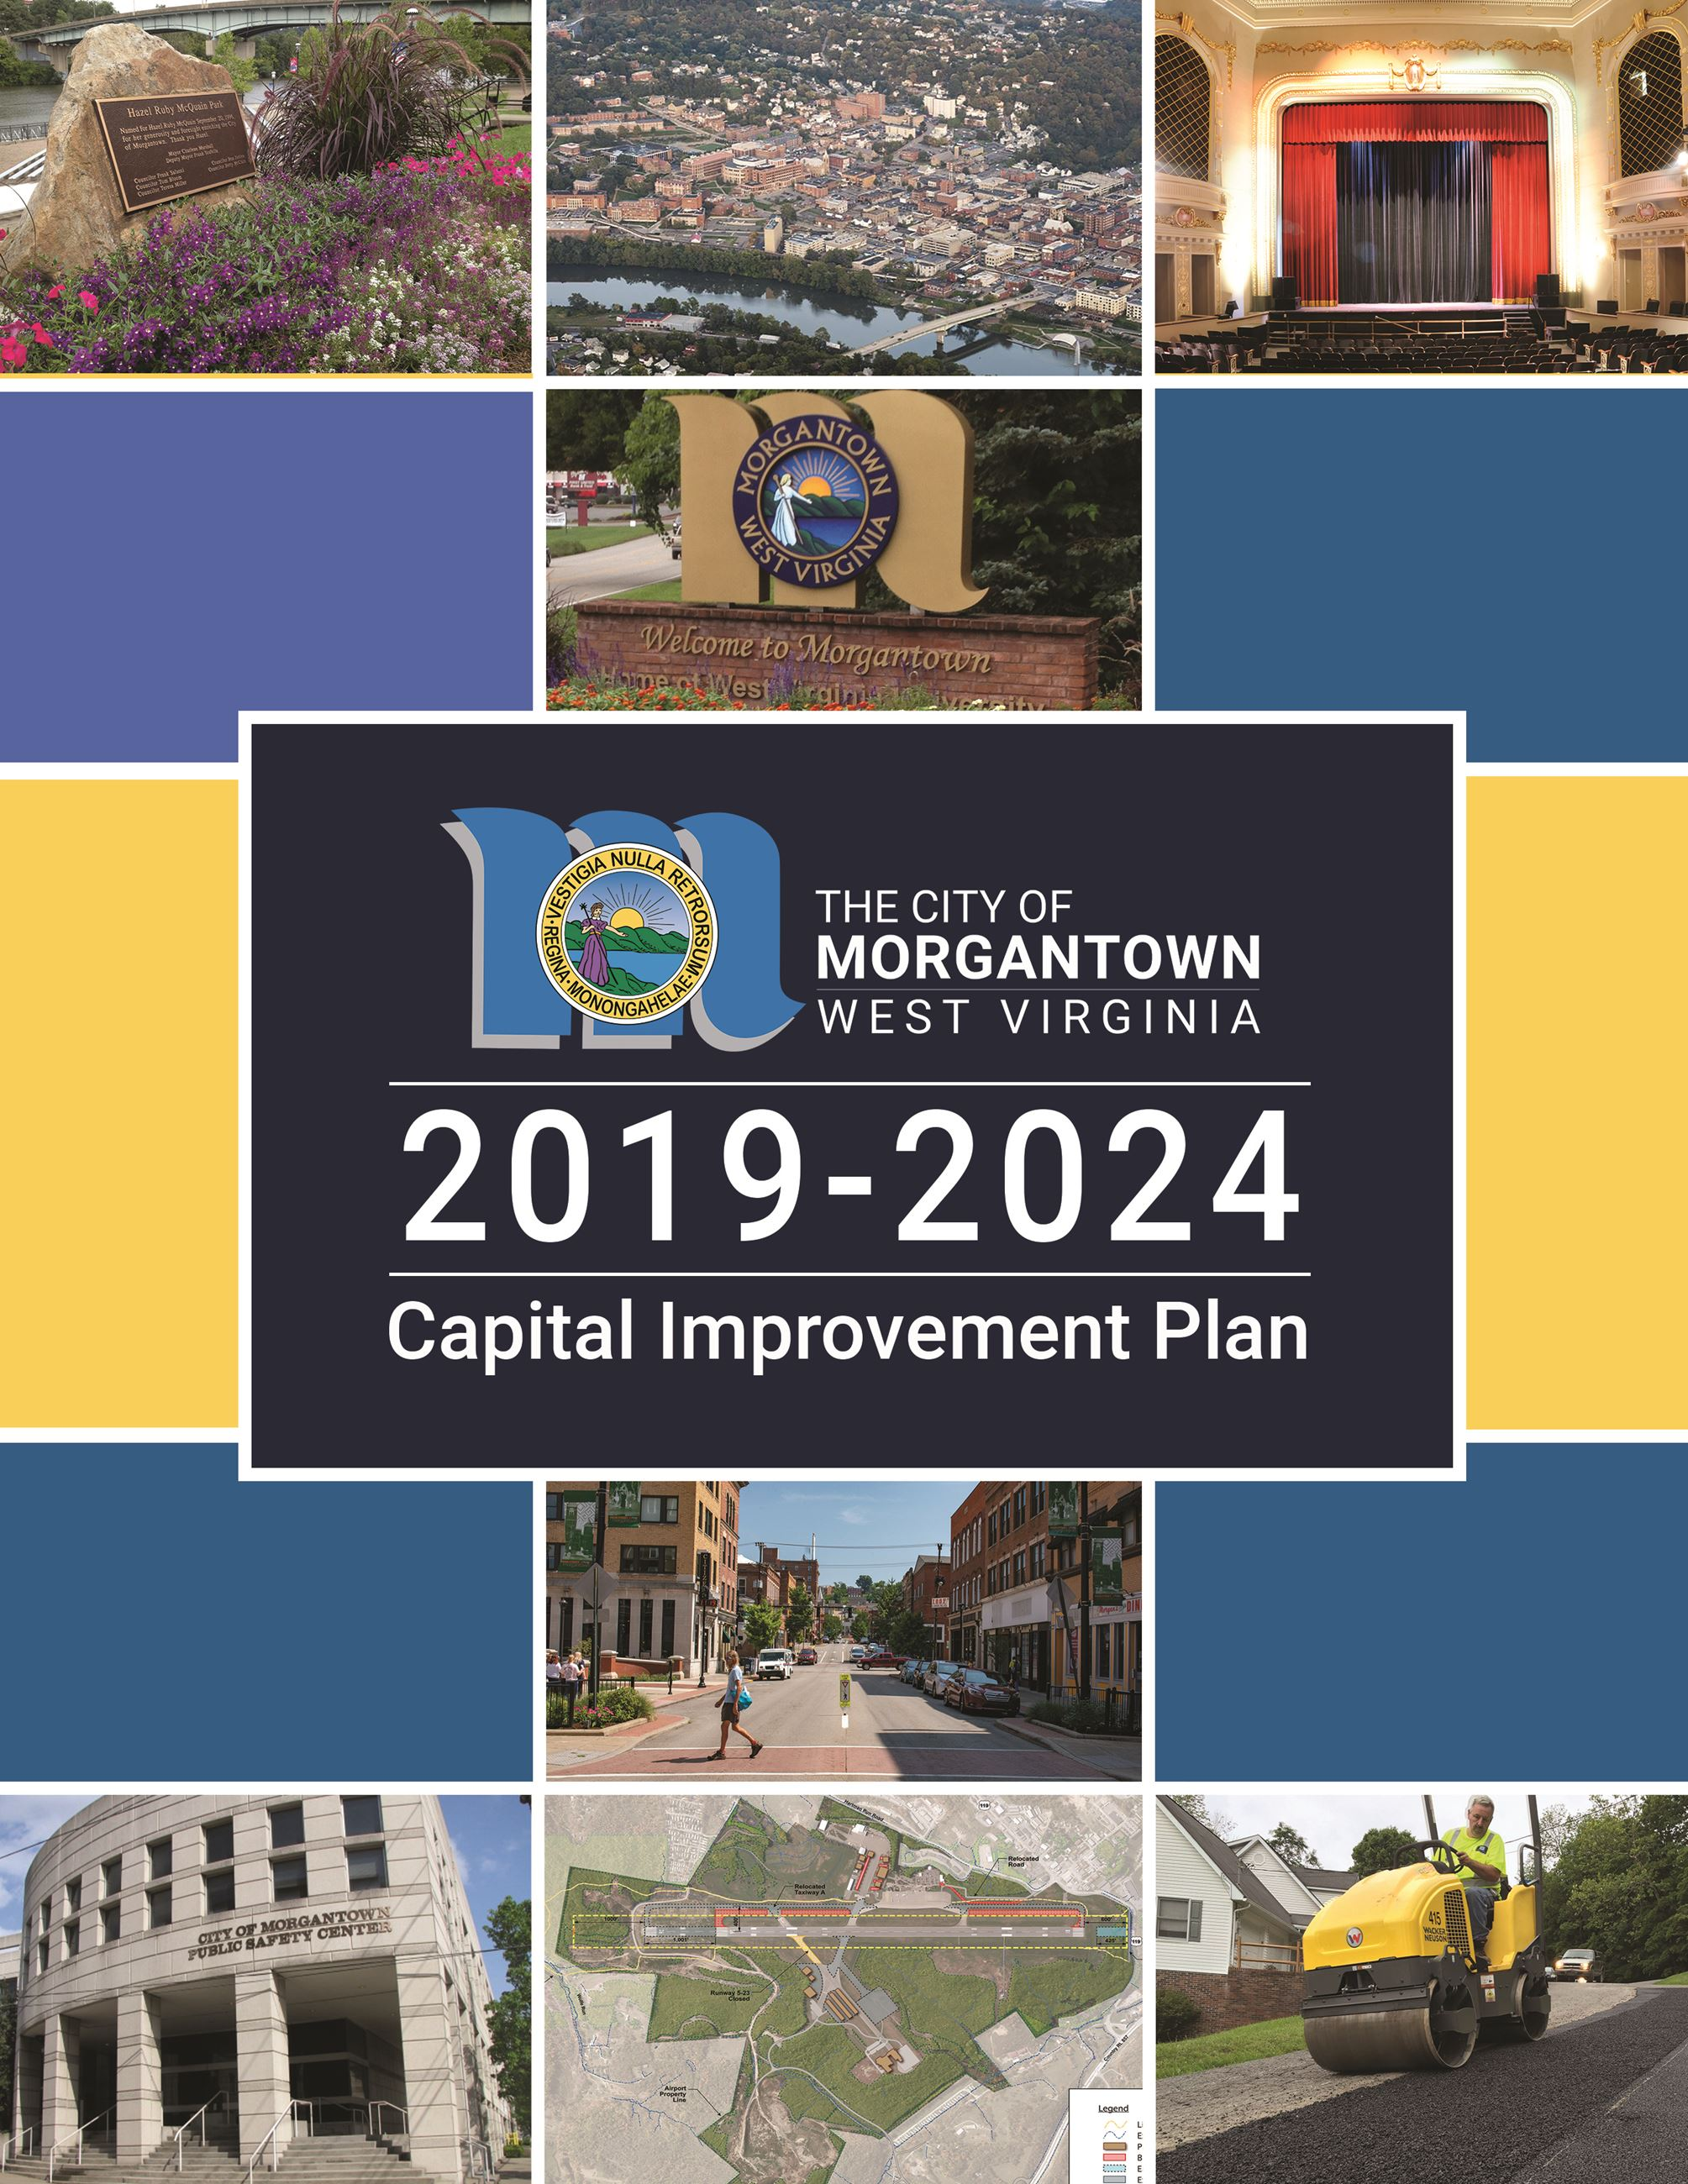 2019-2024 Capital Improvement Plan Cover Opens in new window